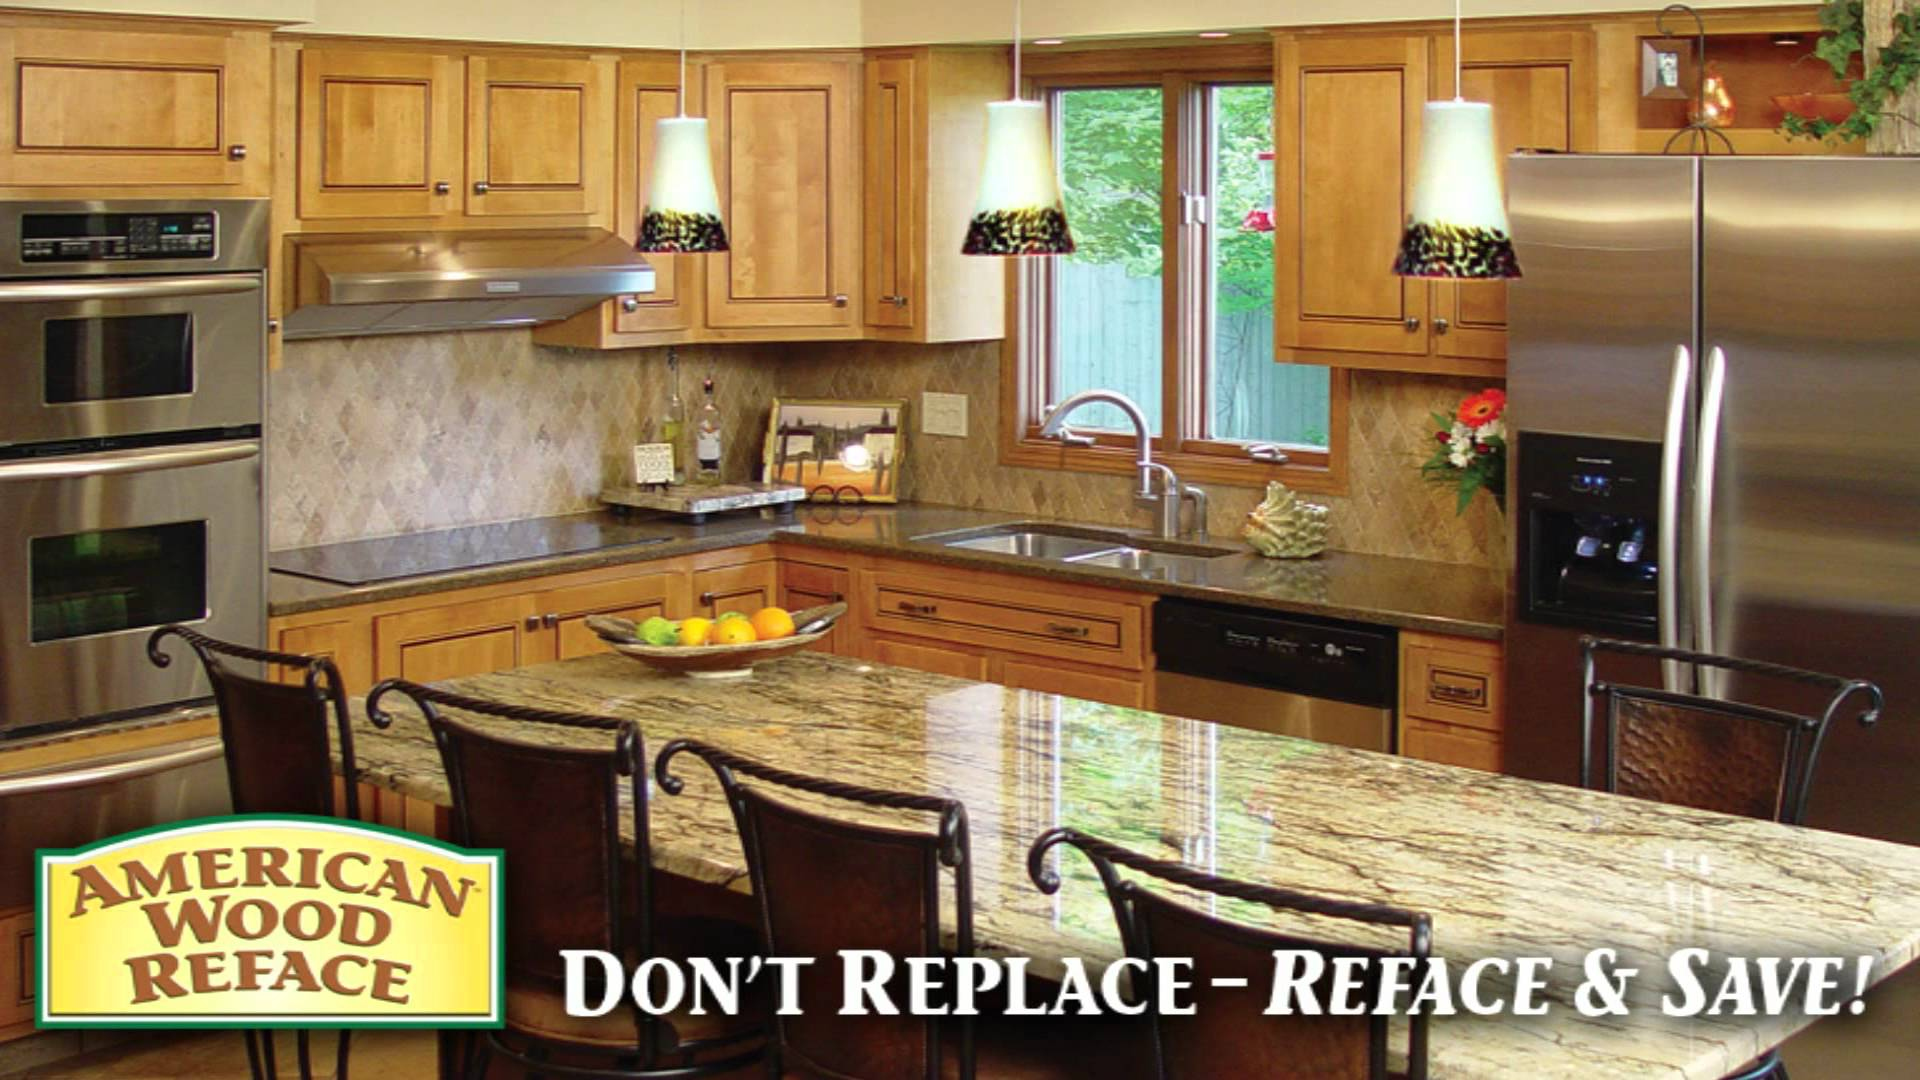 American Wood Reface Kitchen Cabinet Refacing